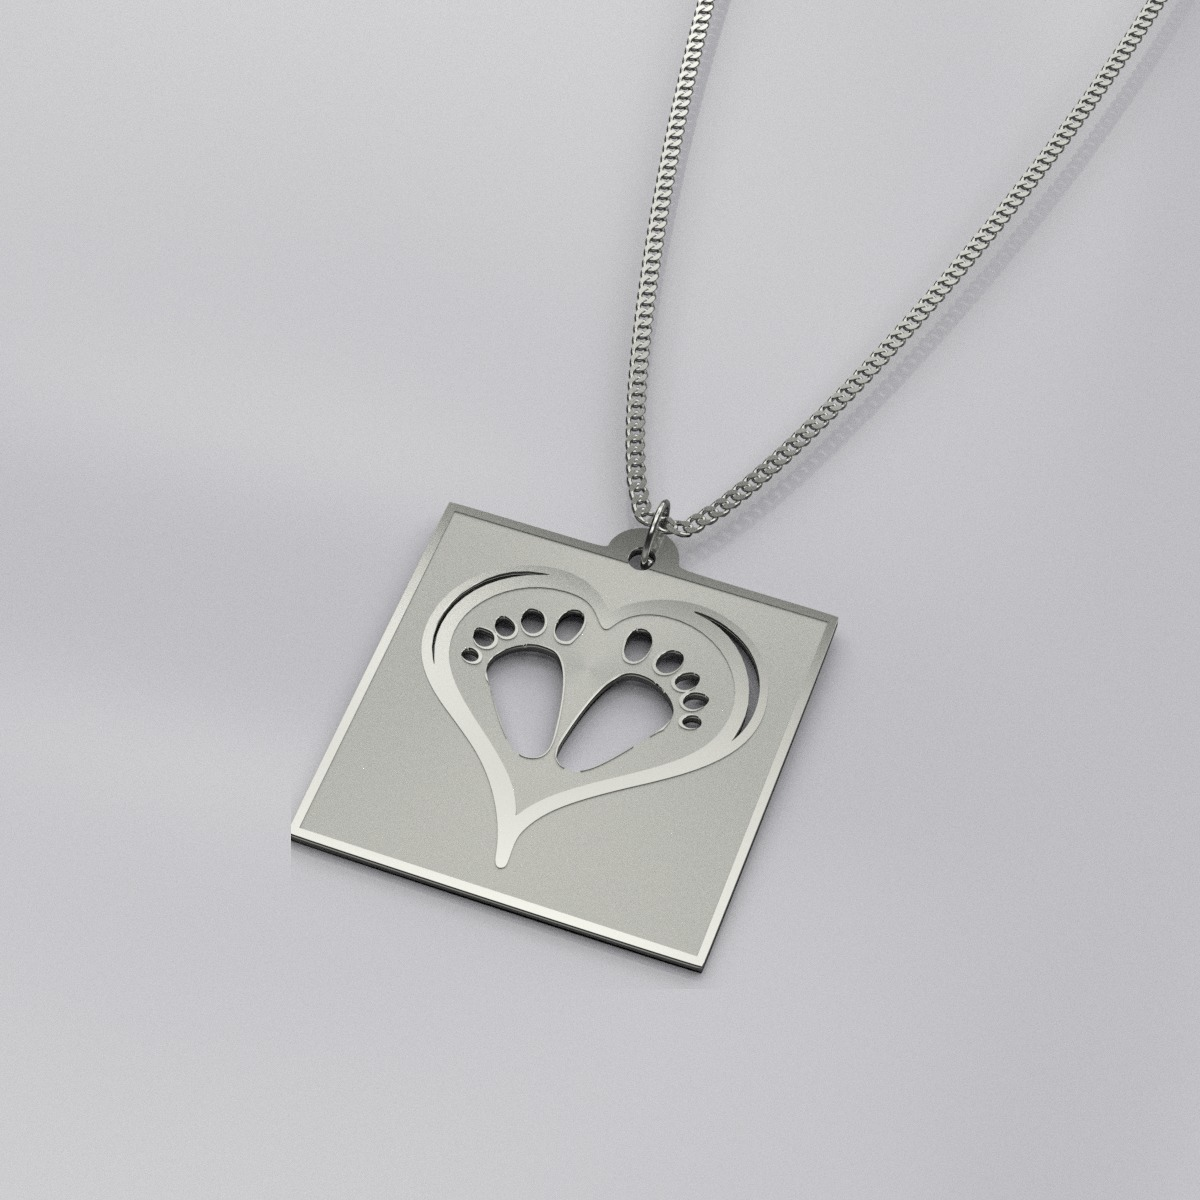 Engraved Baby Footprint Charm Necklace